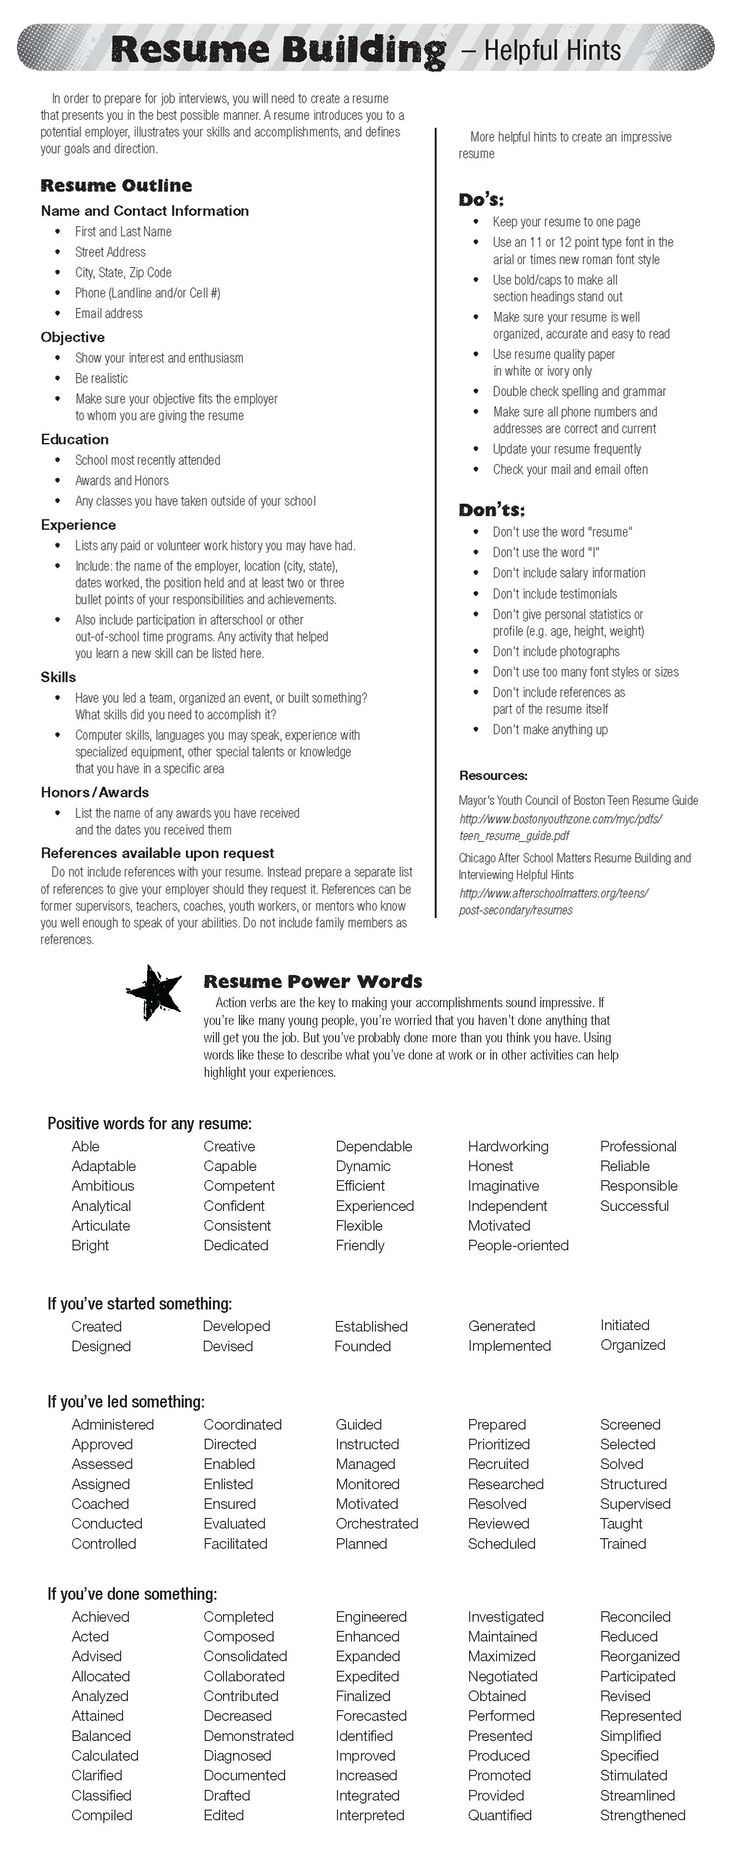 Opposenewapstandardsus  Picturesque  Ideas About Resume On Pinterest  Cv Format Resume Cv And  With Interesting  Ideas About Resume On Pinterest  Cv Format Resume Cv And Resume Templates With Breathtaking Chronological Resume Samples Also Free Resume Template Word In Addition Graphic Designer Resume Sample And Medical Assistant Resume Skills As Well As Resume Builder Reviews Additionally Production Manager Resume From Pinterestcom With Opposenewapstandardsus  Interesting  Ideas About Resume On Pinterest  Cv Format Resume Cv And  With Breathtaking  Ideas About Resume On Pinterest  Cv Format Resume Cv And Resume Templates And Picturesque Chronological Resume Samples Also Free Resume Template Word In Addition Graphic Designer Resume Sample From Pinterestcom